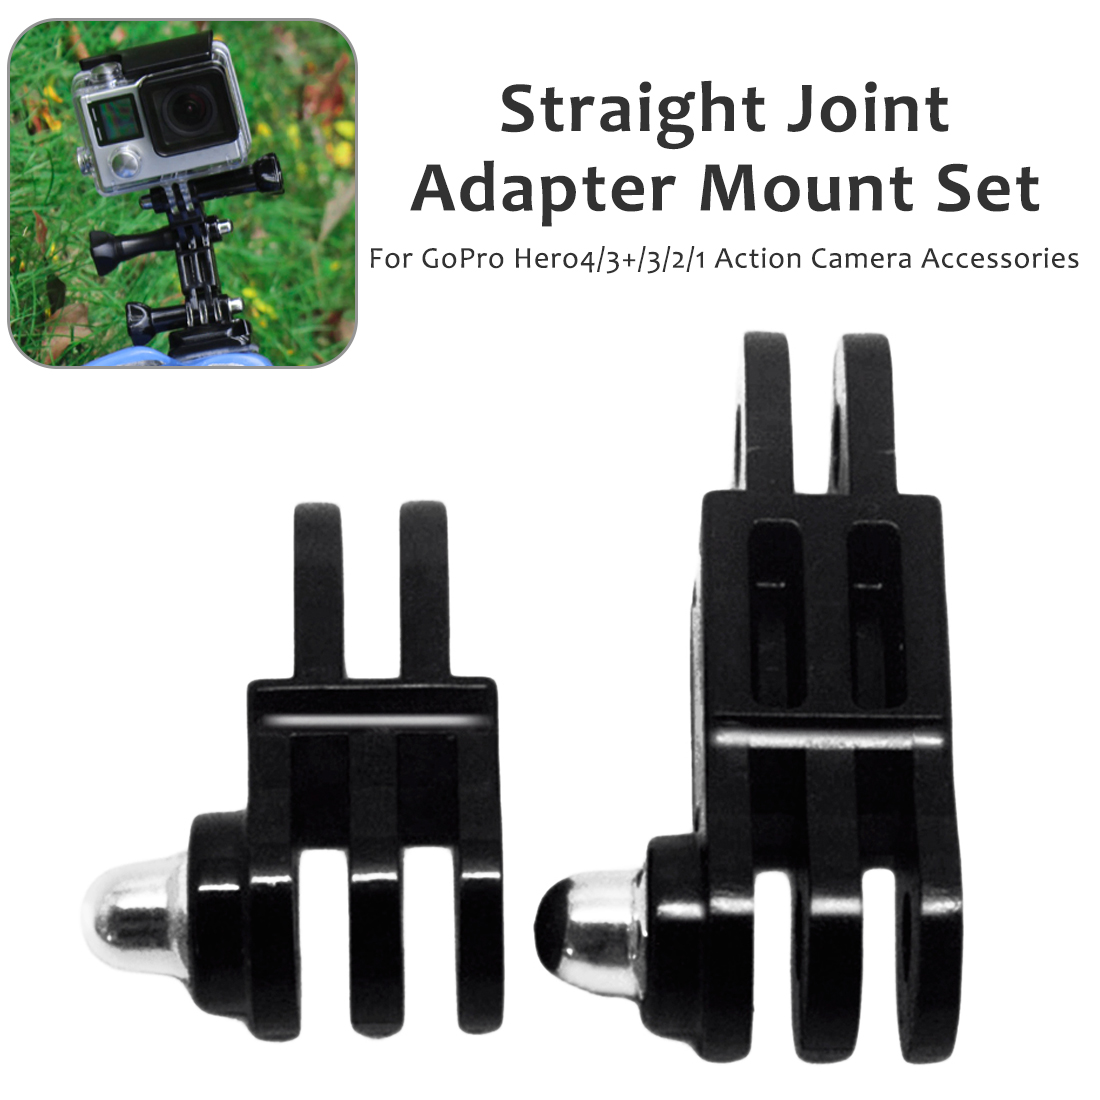 2pcs Universal Black Plastic Adjustable 3- Way Pivot Arm Assembly Extension Adapter For GoPro Hero 4 3+ 3 2 1 Action Camera